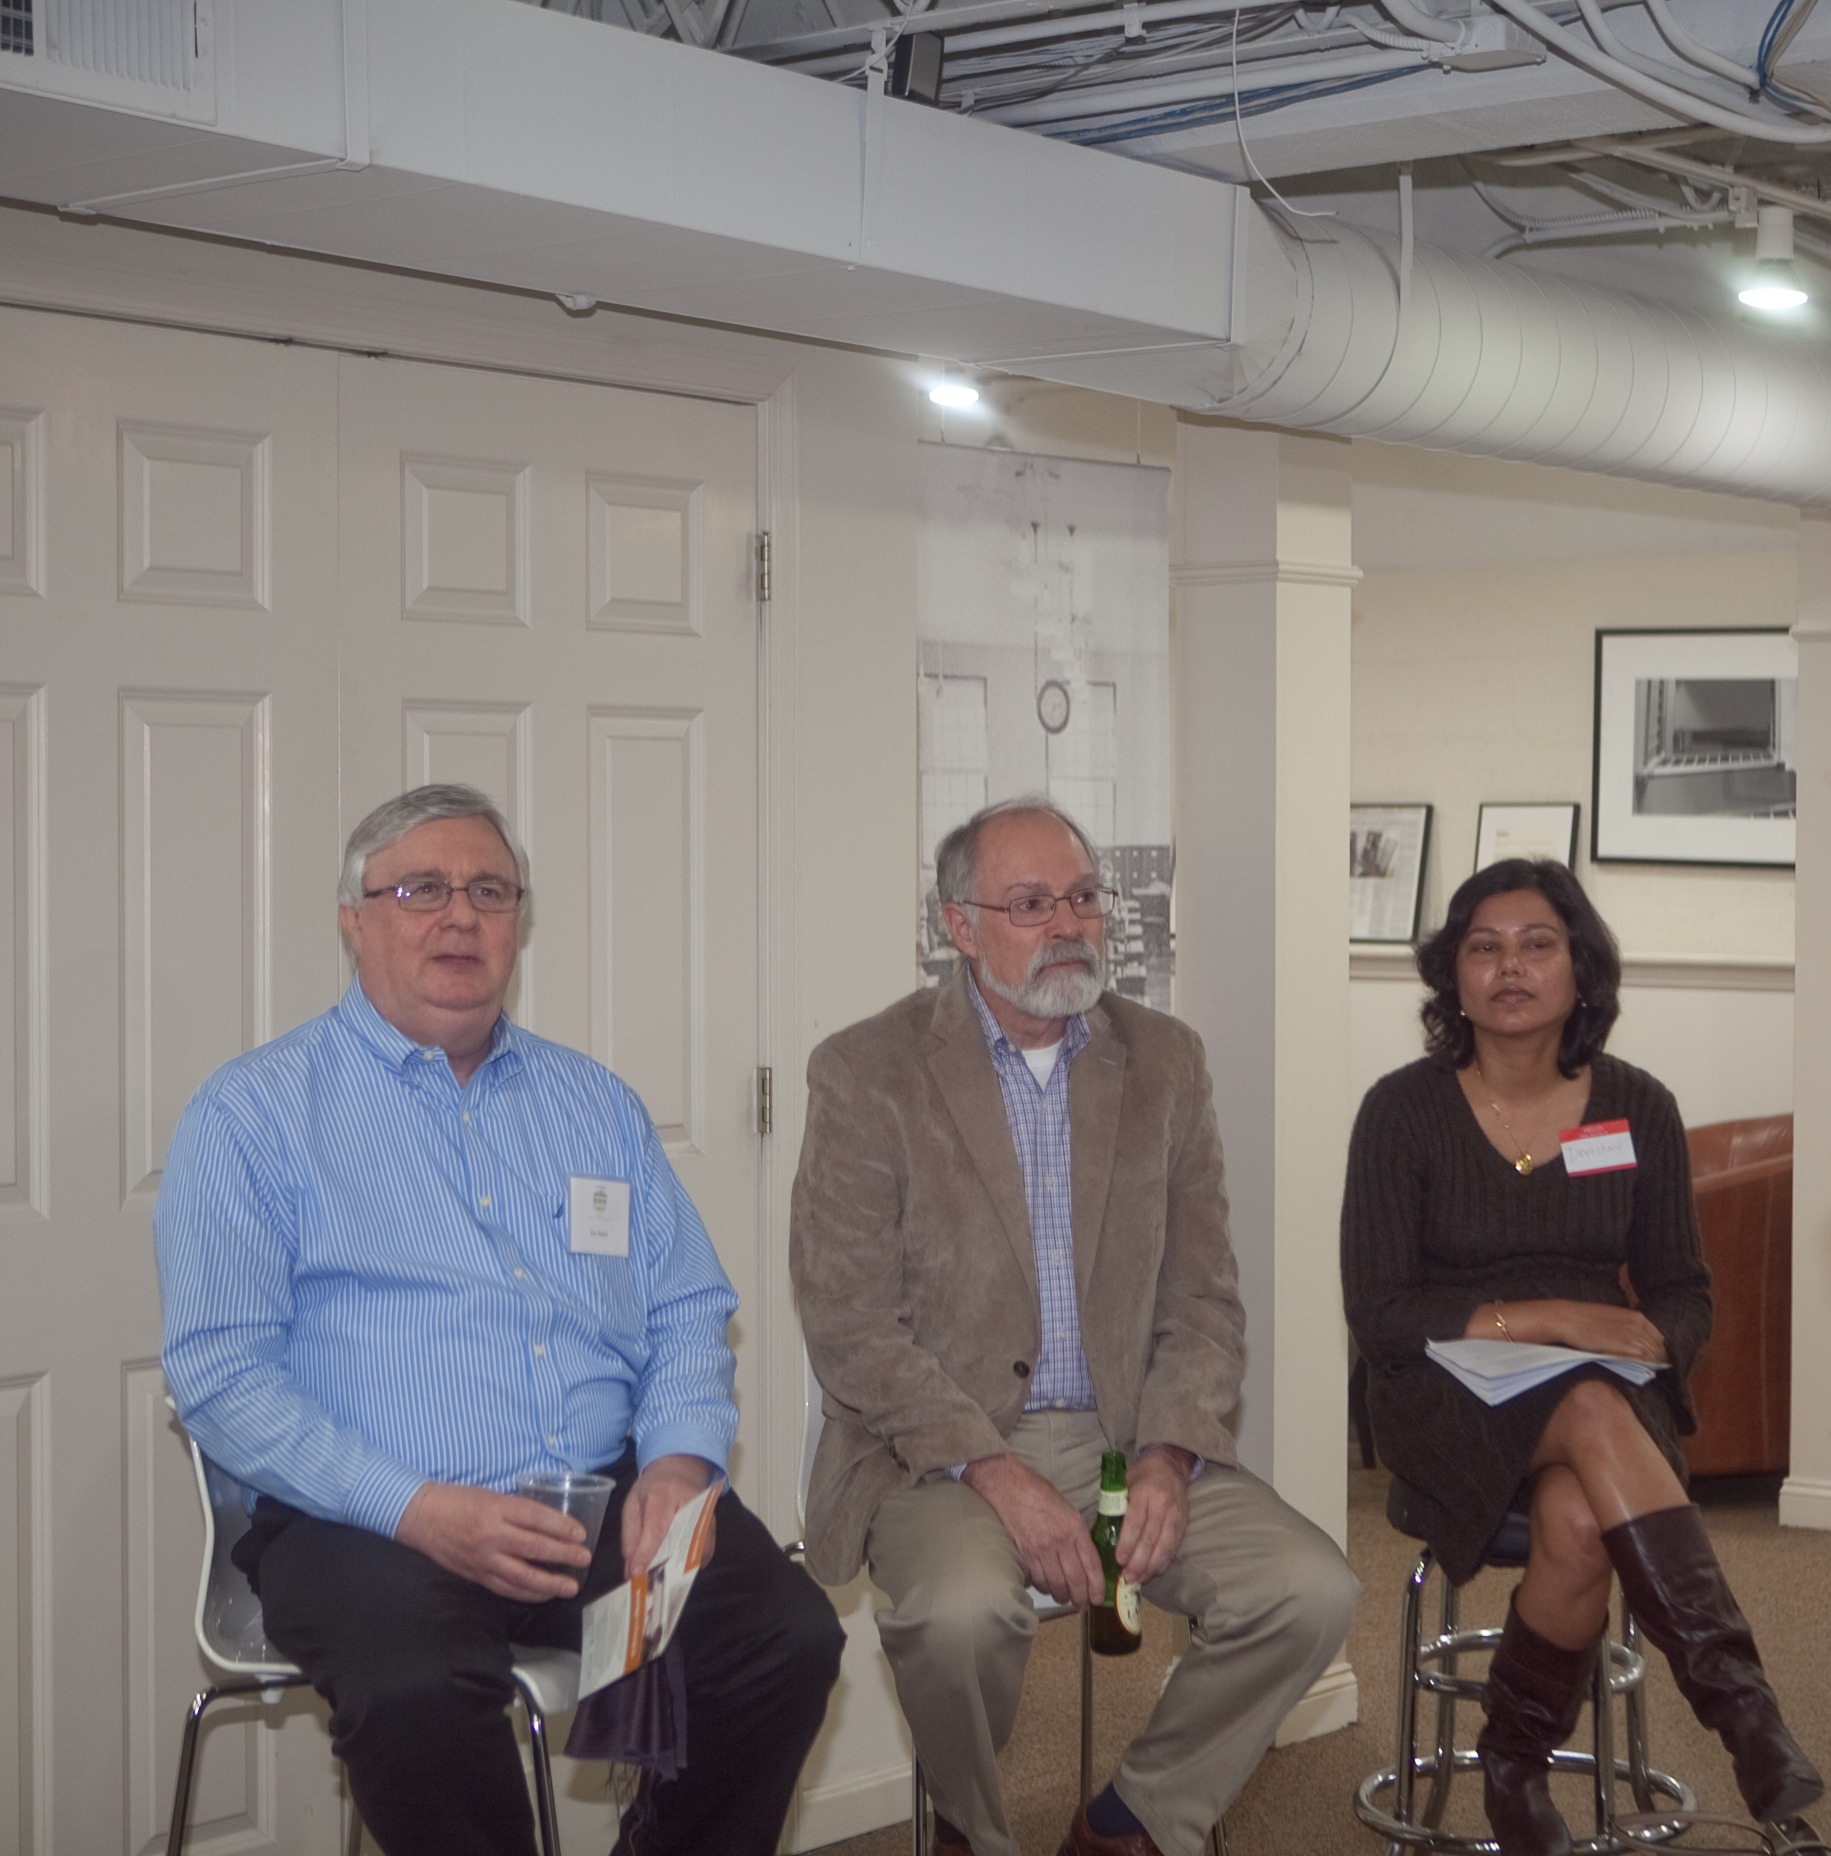 Professional happy hour speakers are (l-r) Ken Alston, Skip Laitner, and Devashree Saha.